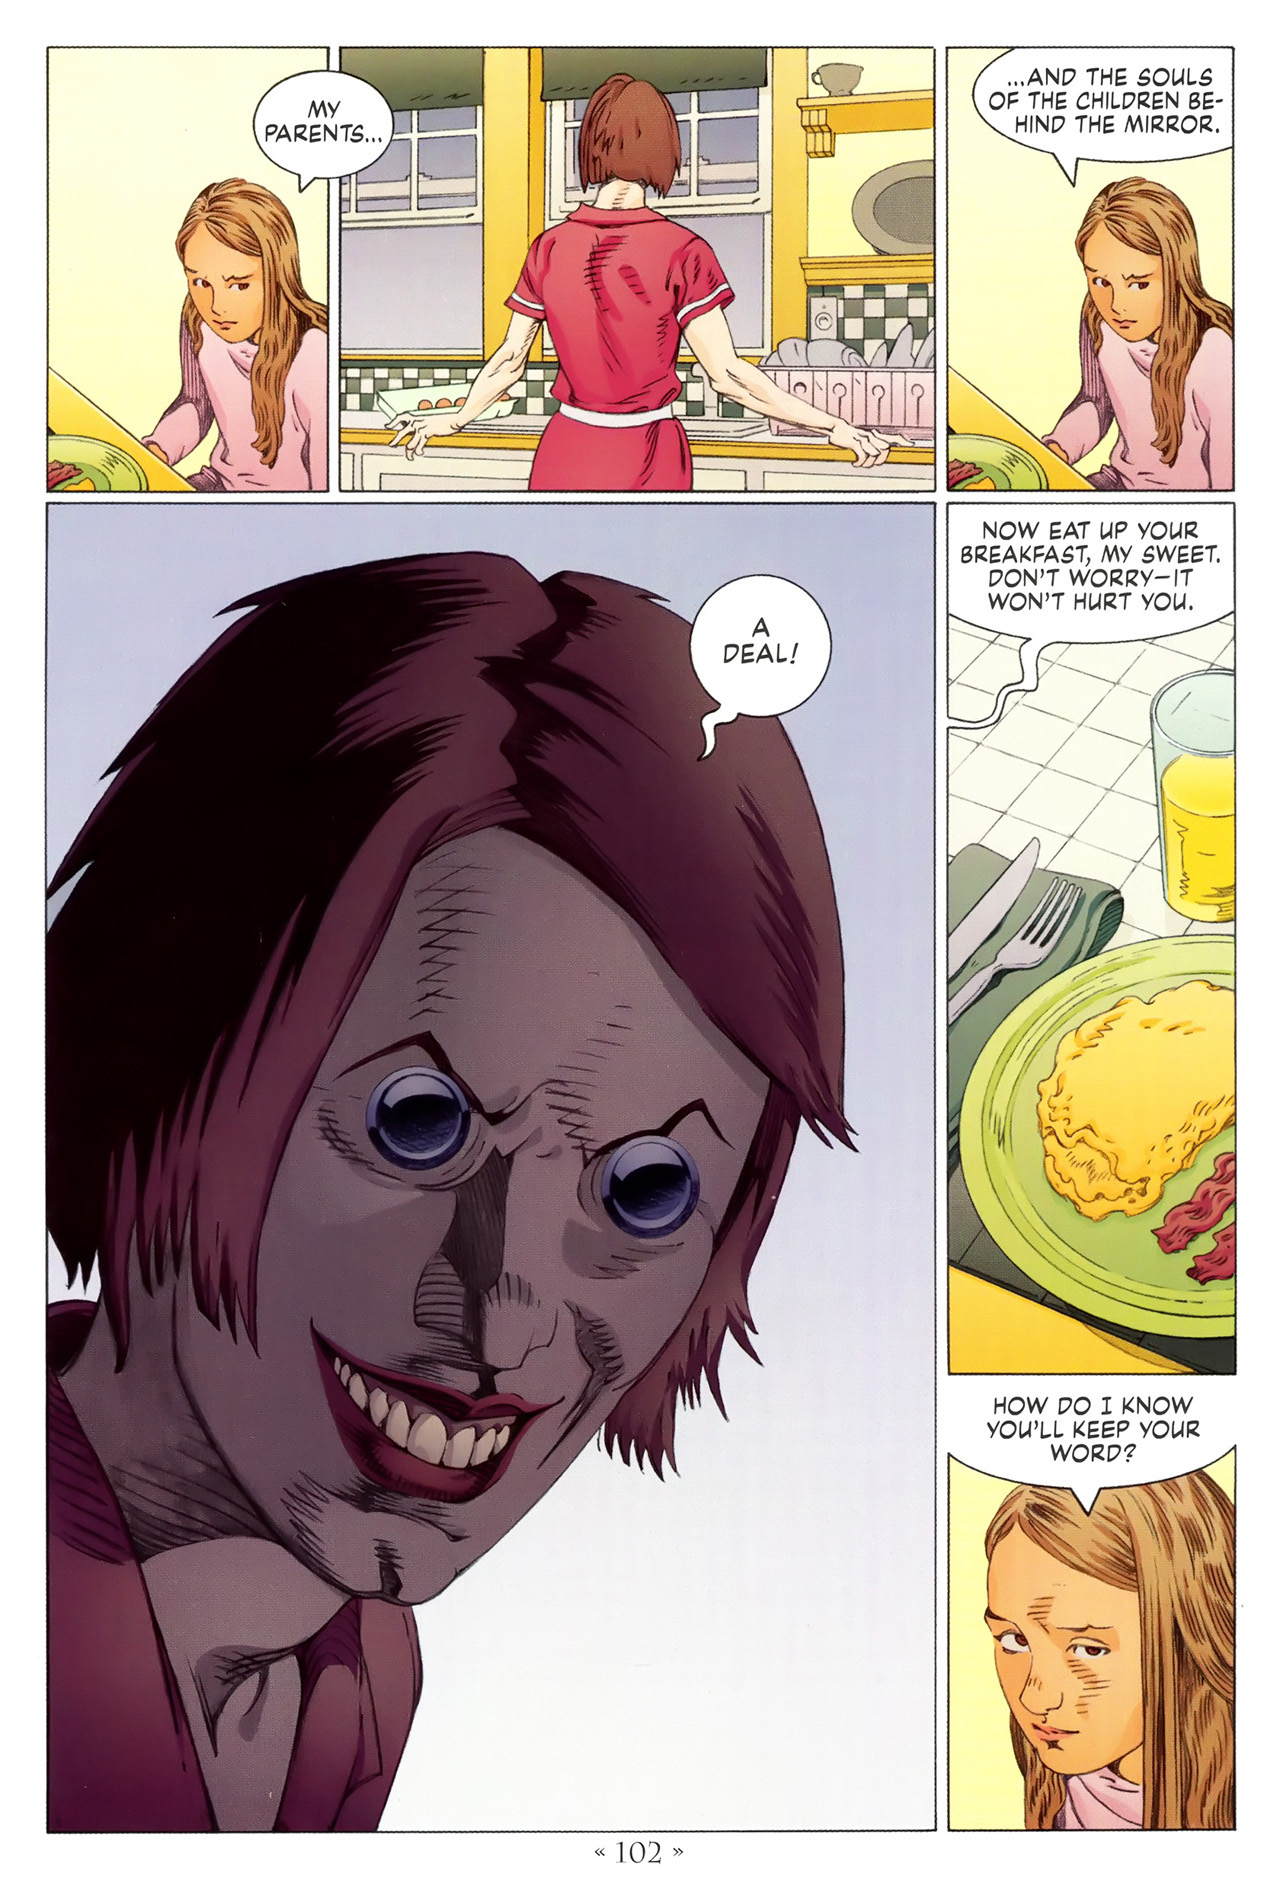 Read online Coraline comic -  Issue #1 - 108